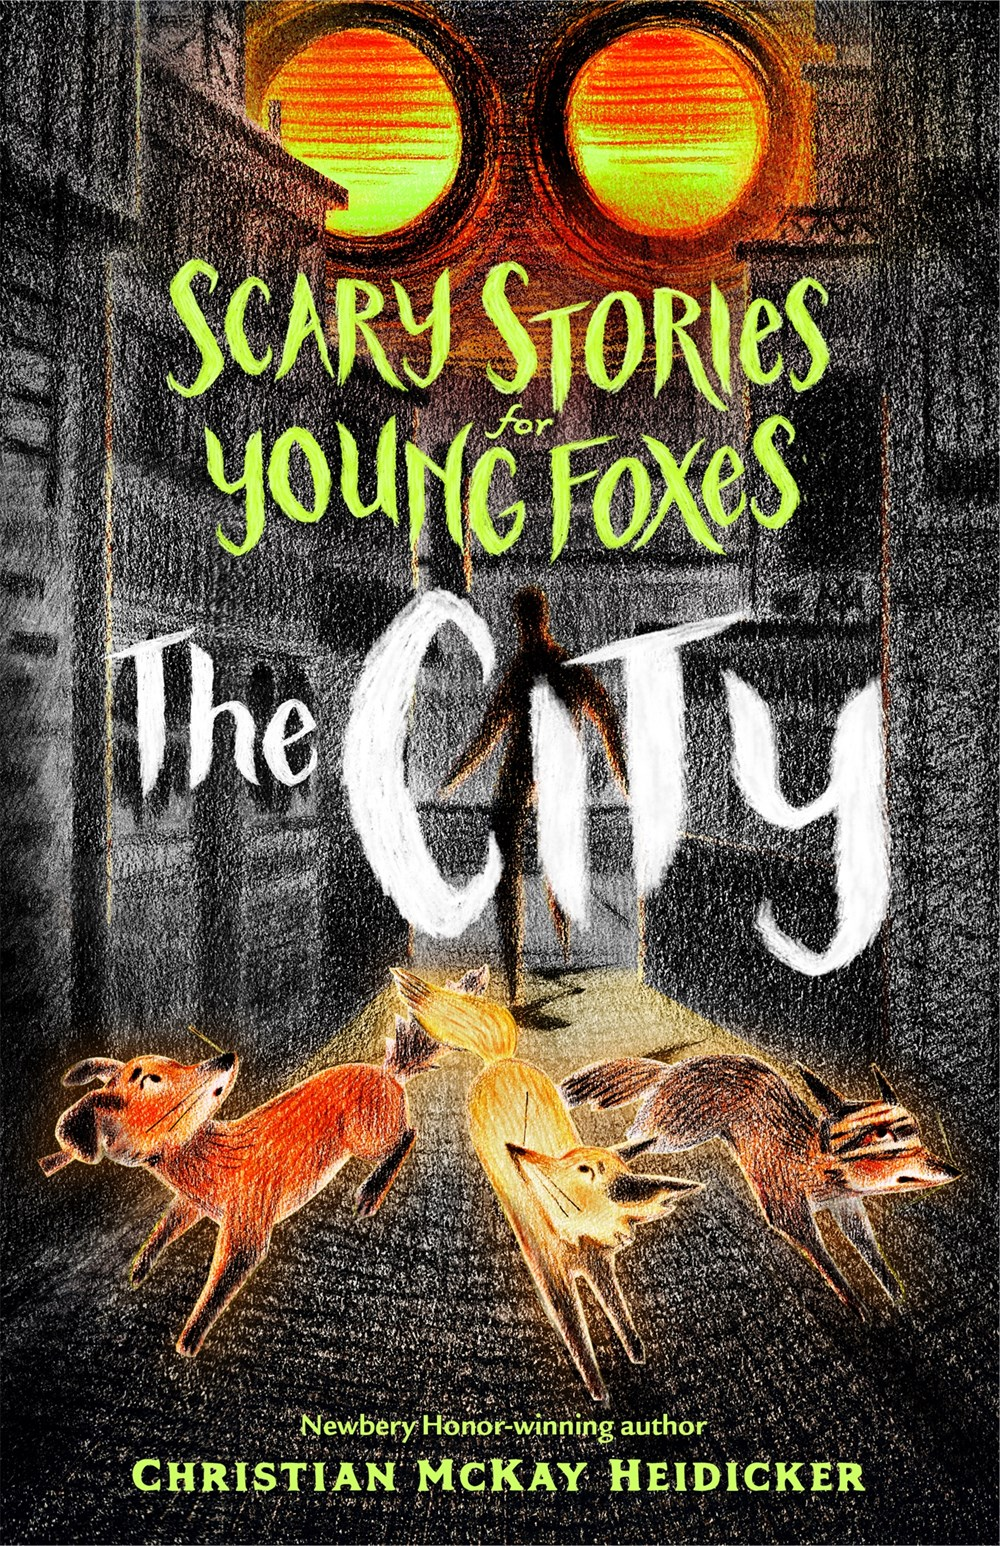 The City (Scary Stories for Young Foxes, #2)